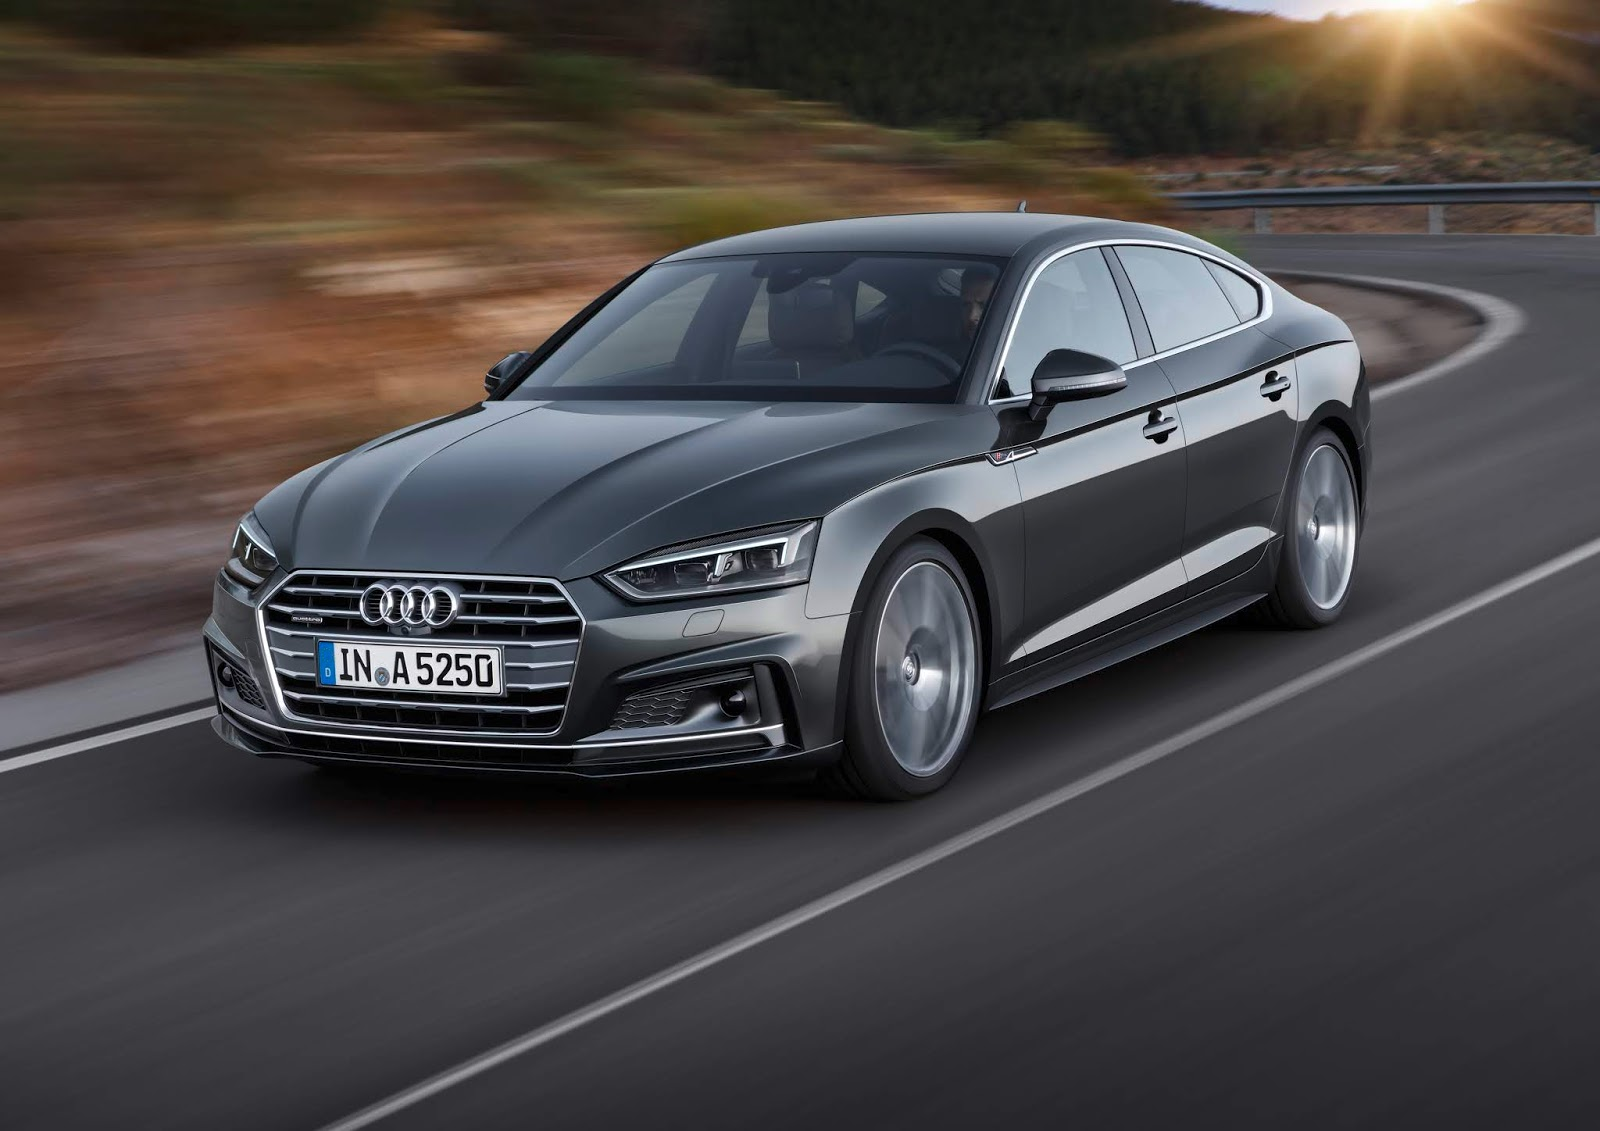 Motoring Malaysia The 2019 Audi A5 Sportback Has Been Launched A5